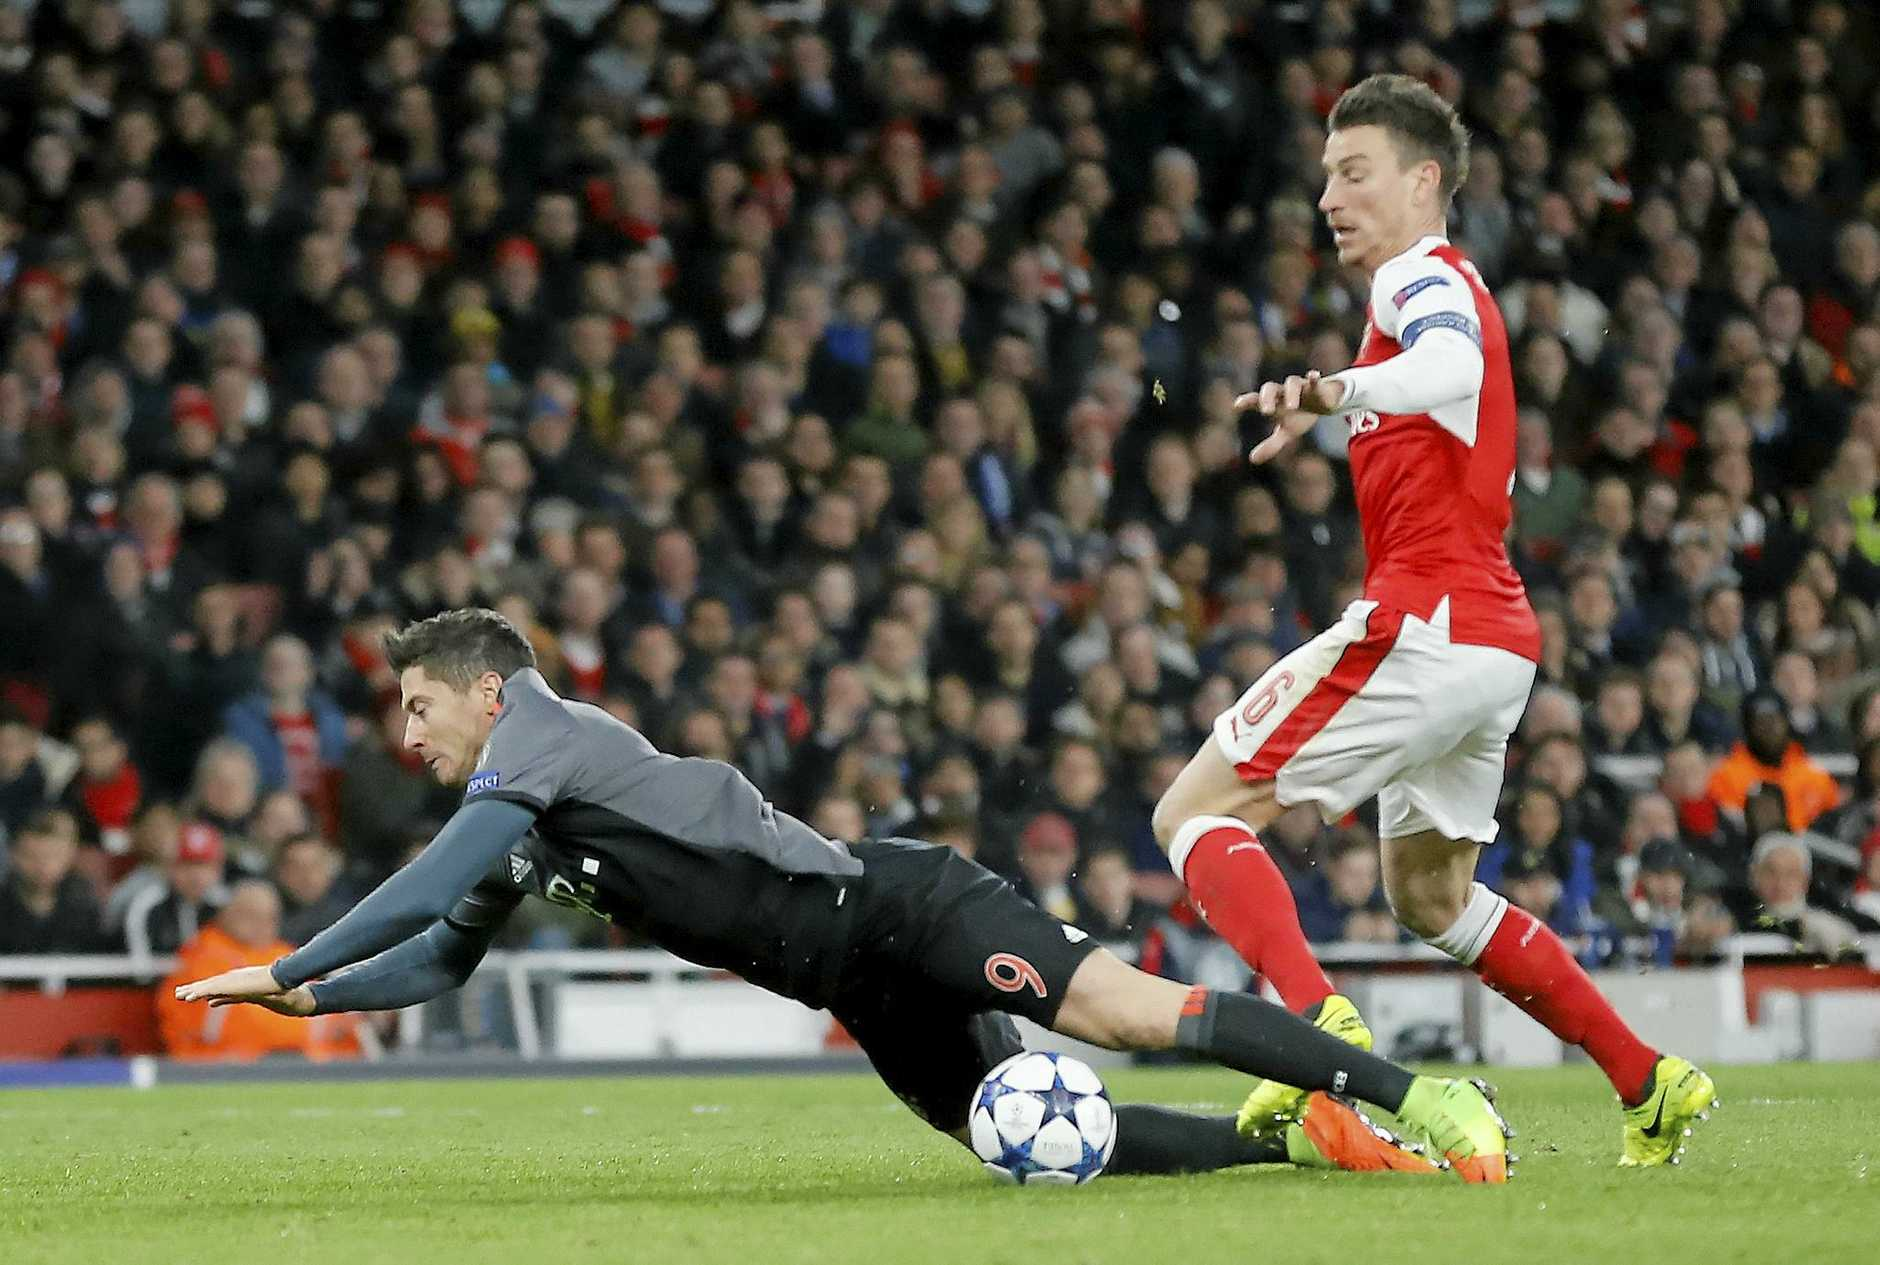 Arsenal's Laurent Koscielny, right, fouls Bayern's Robert Lewandowski to concede a penalty. Arsene Wenger said the referee got this wrong.